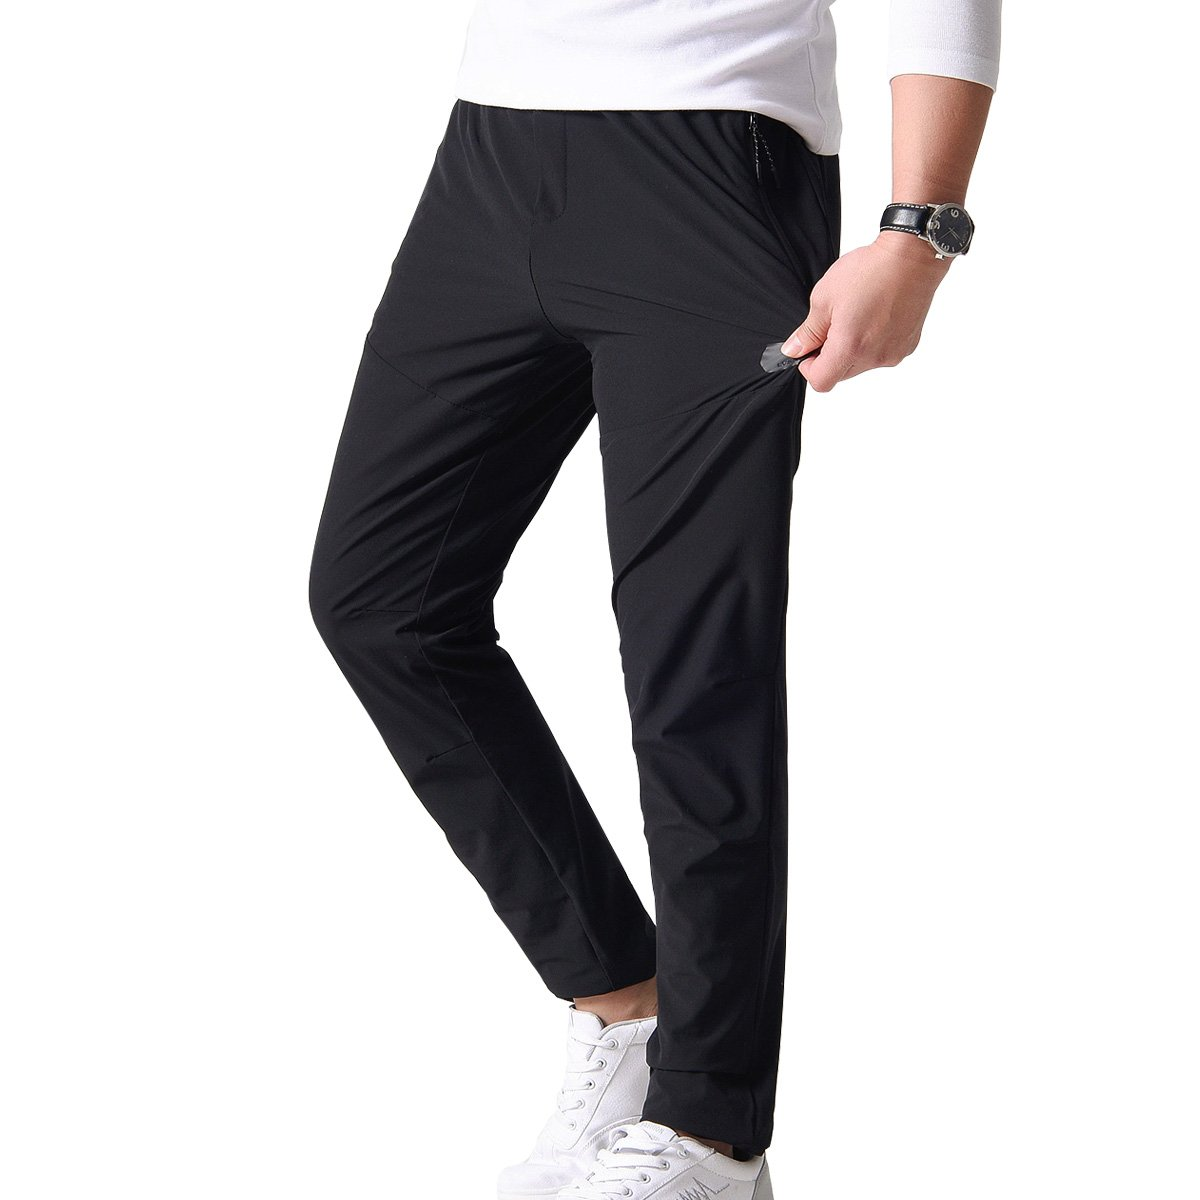 Fung-wong Men's Spring and Summer Lightweight Breathable Casual Hiking Pants Outdoor Sports Quick Dry Trousers